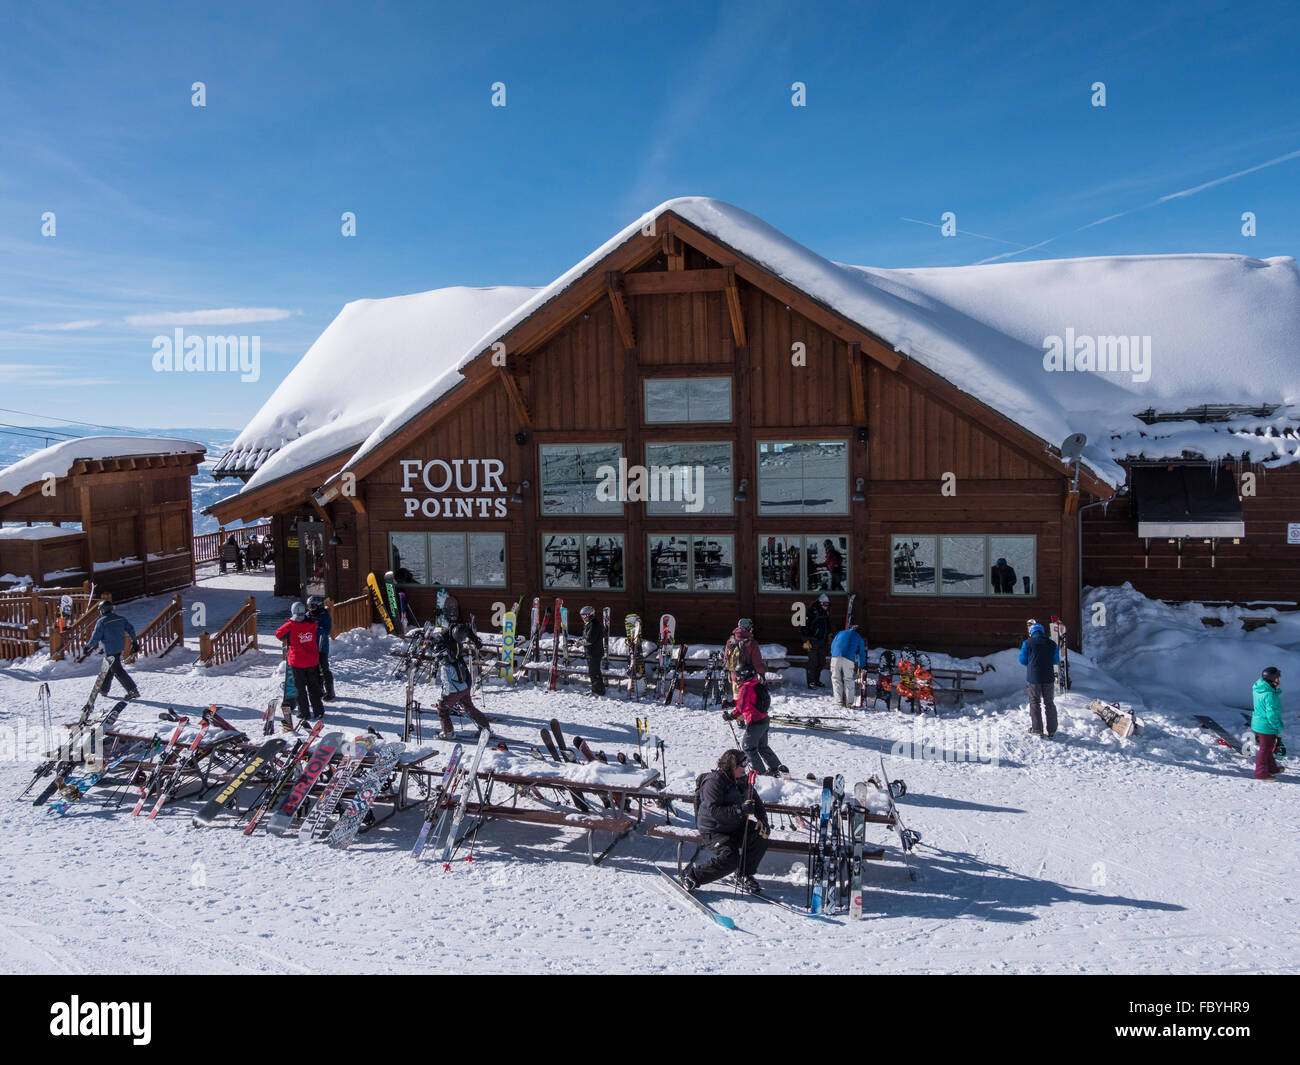 Four Points Lodge, Steamboat Ski Area, Steambaot Springs, Colorado. - Stock Image